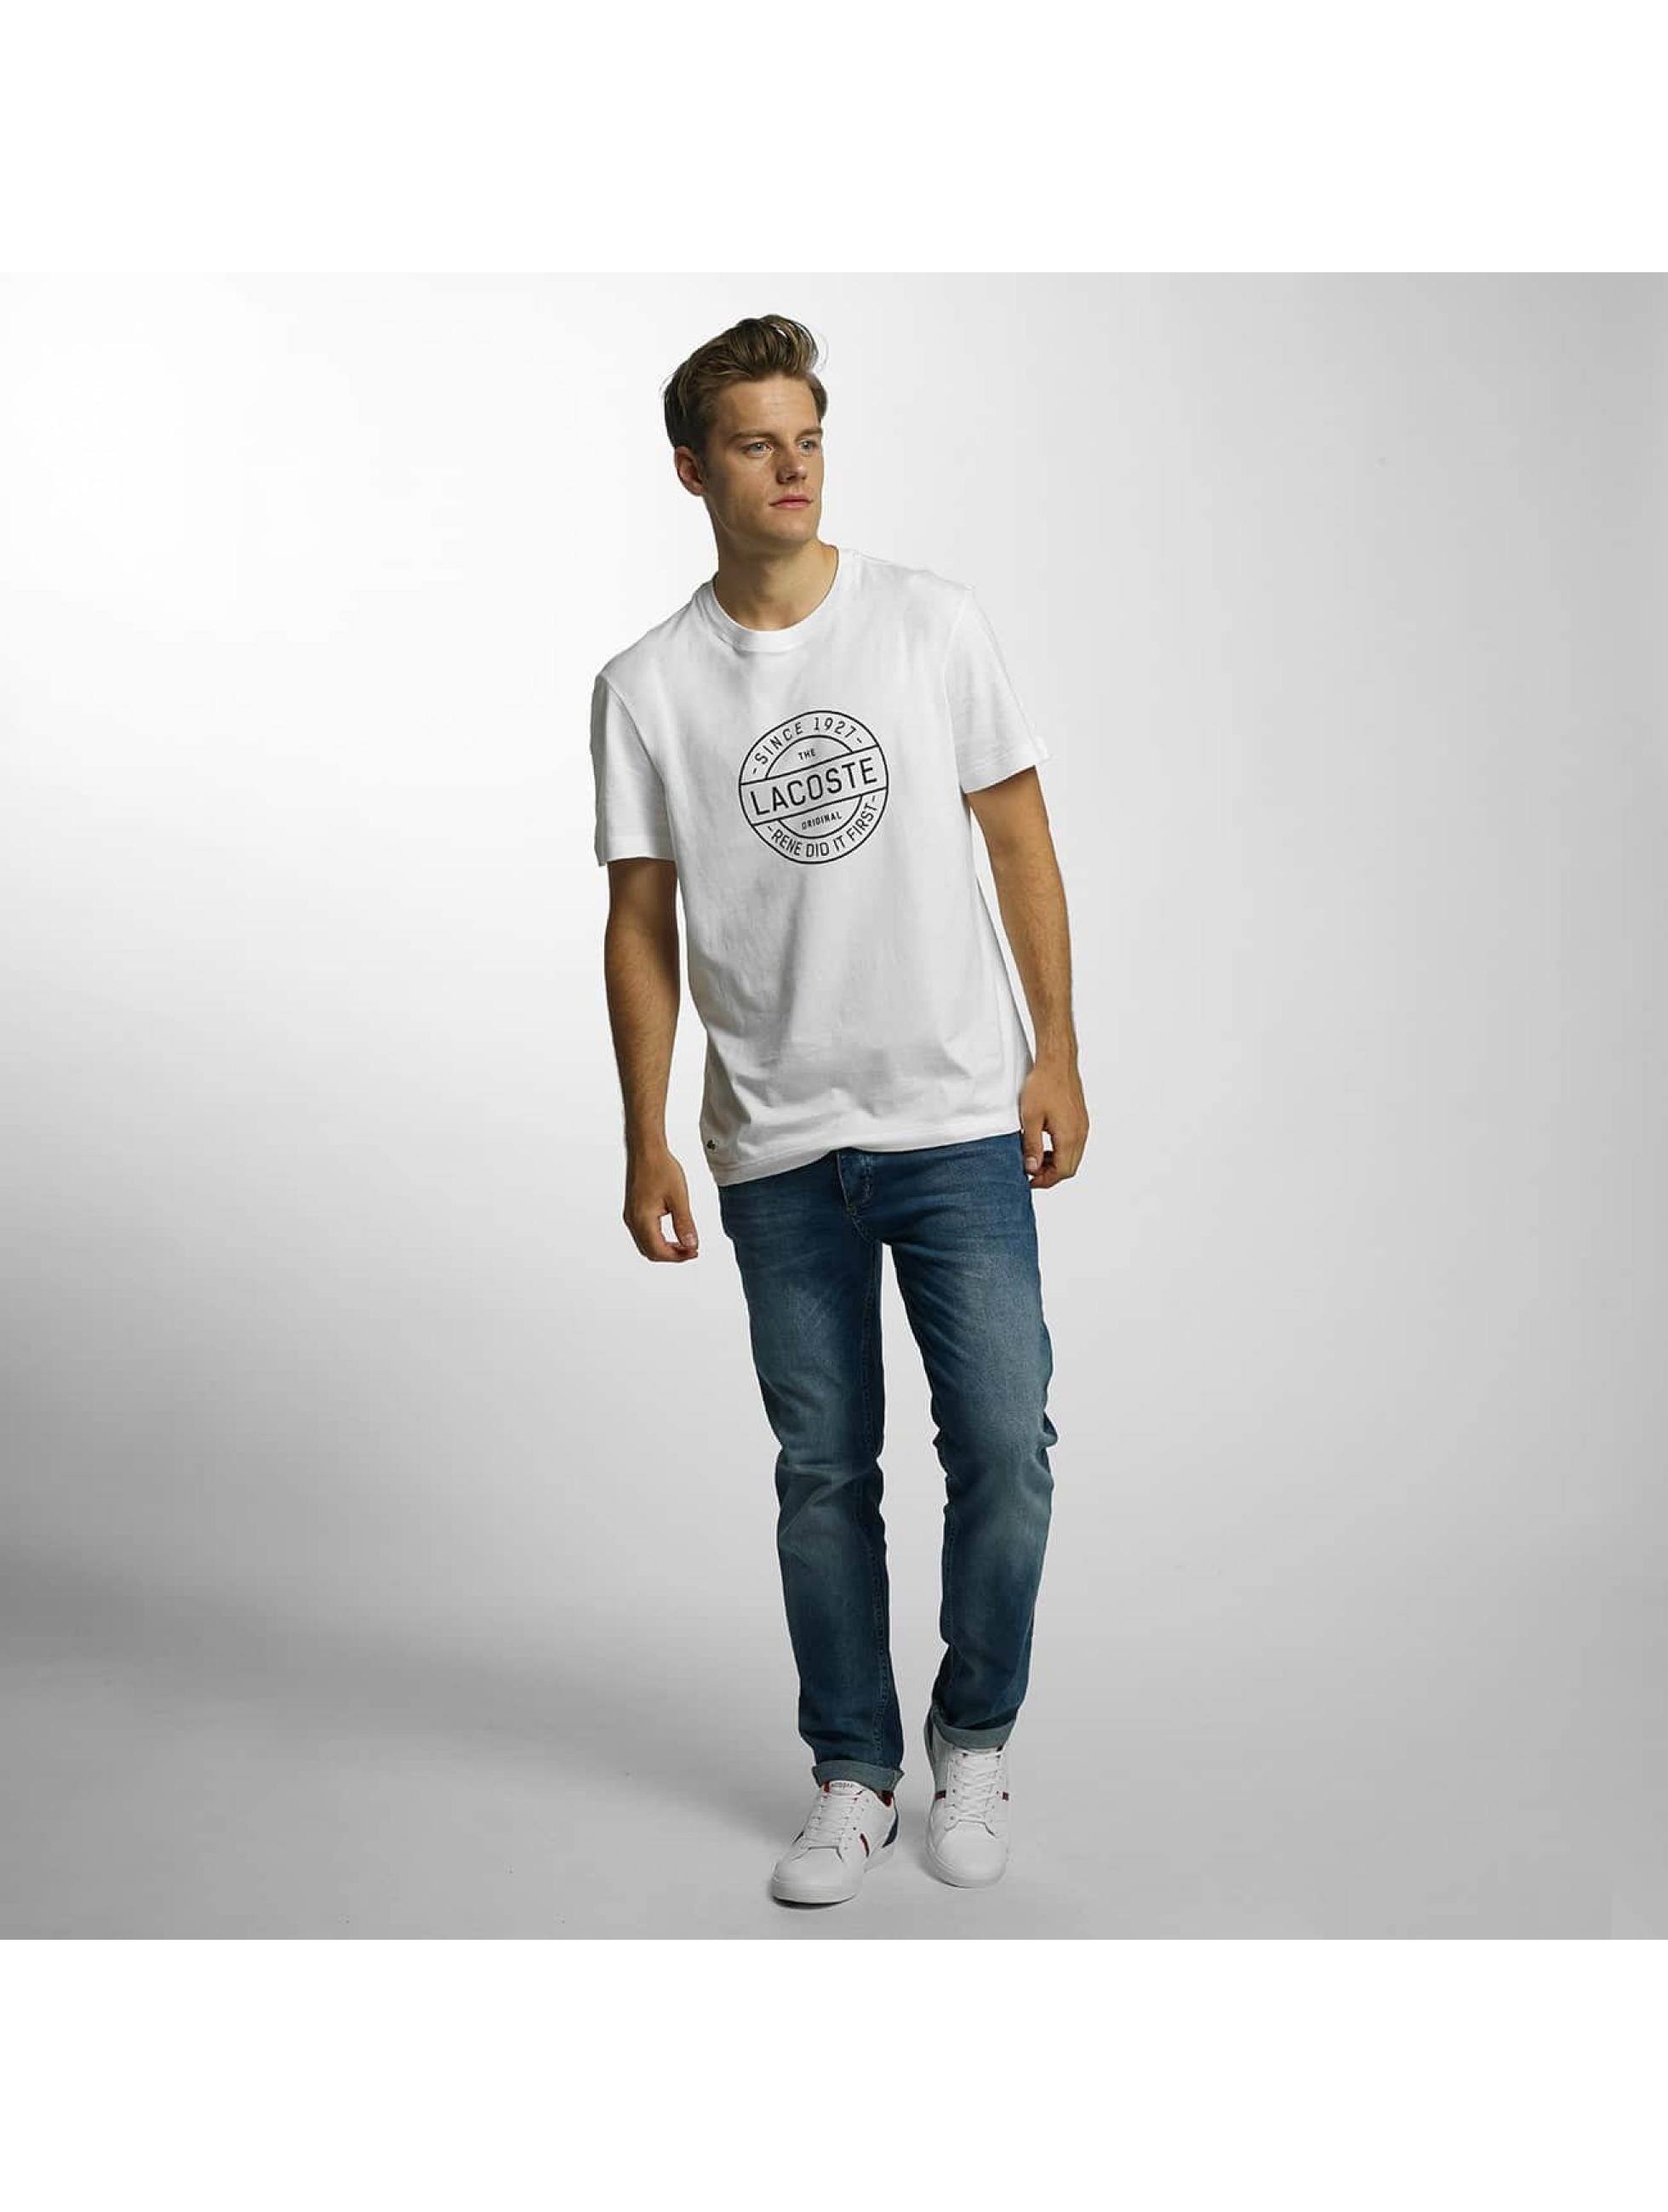 Lacoste T-Shirty Original bialy